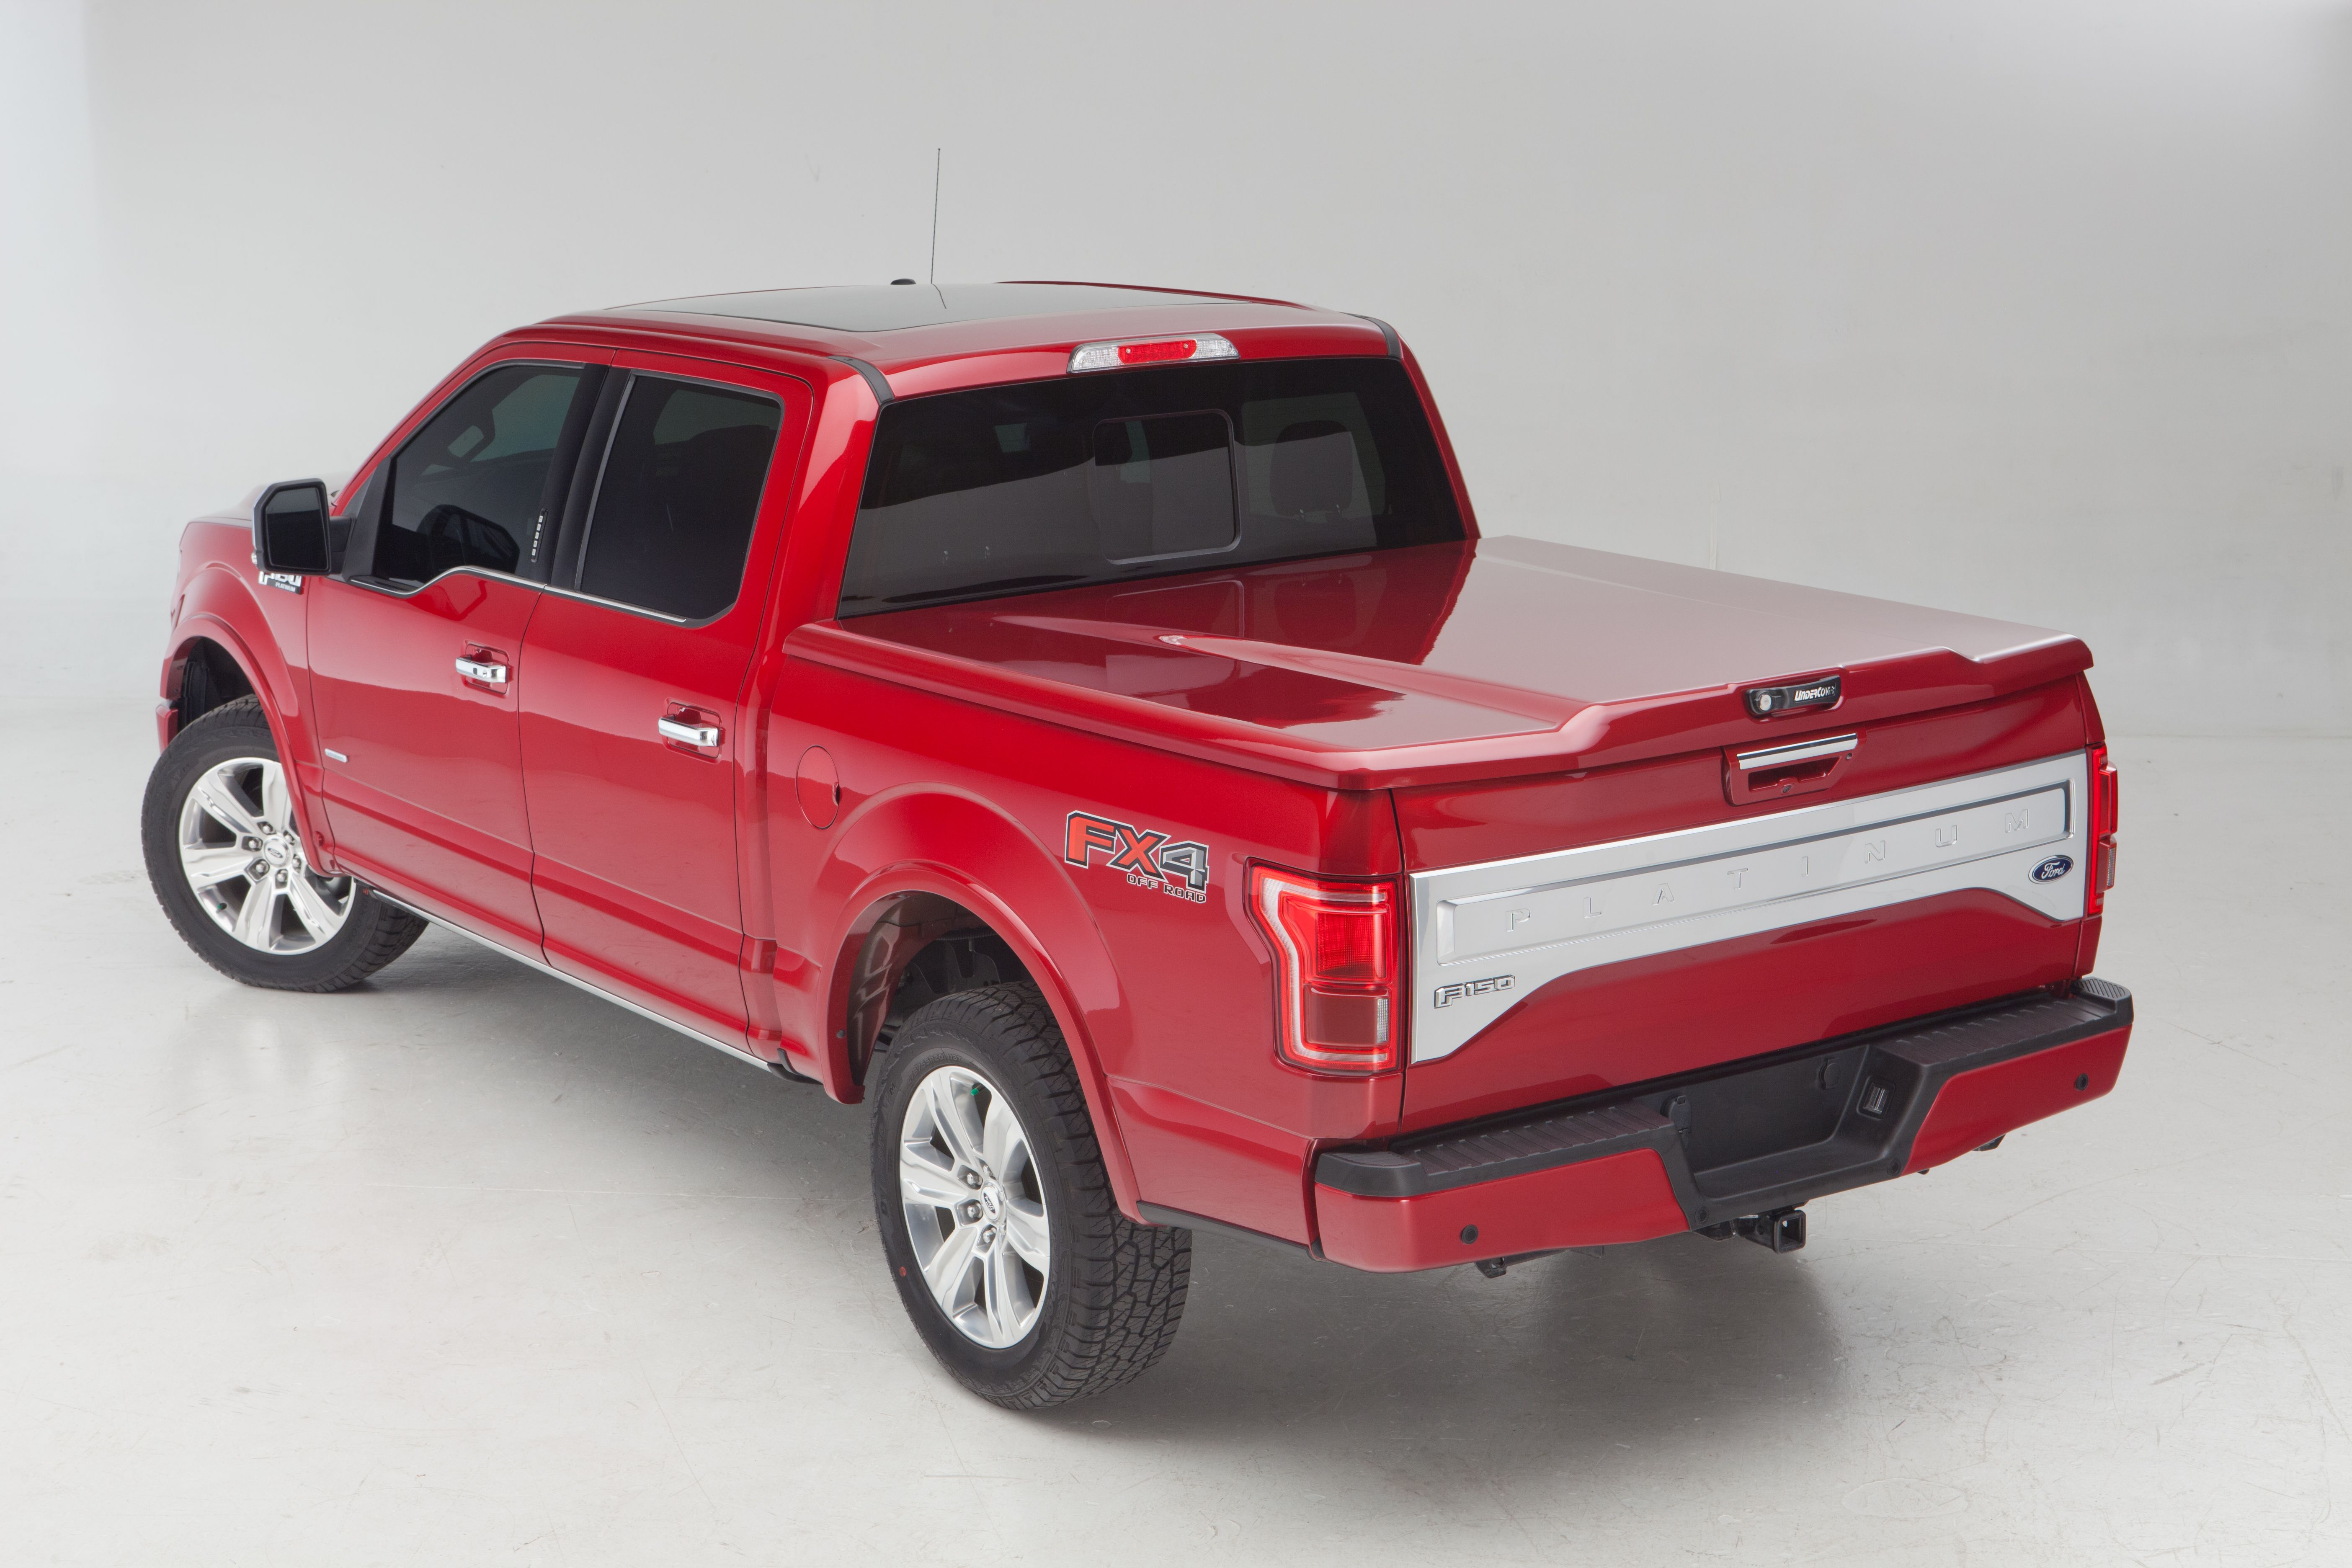 2015 Ford F150 Platinum with Elite LX Bed Cover from